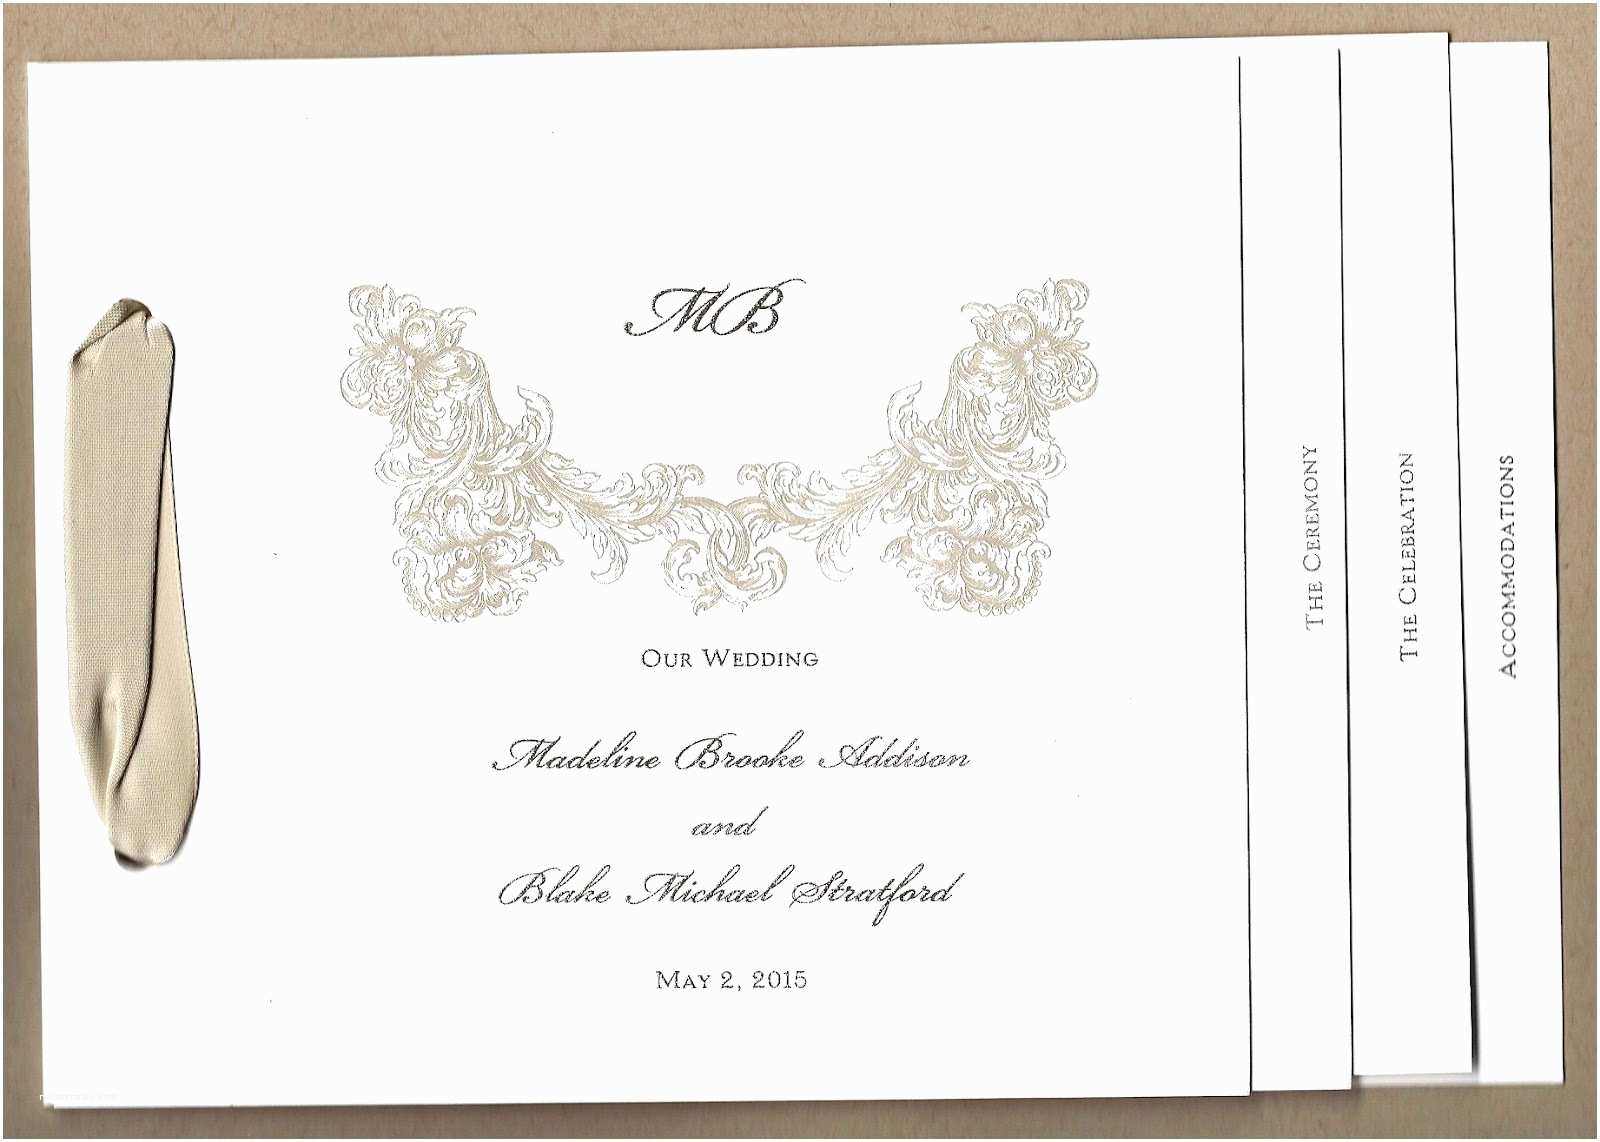 Make Your Own Wedding Invitations Online Free: Make Your Own Wedding Invites Online Free